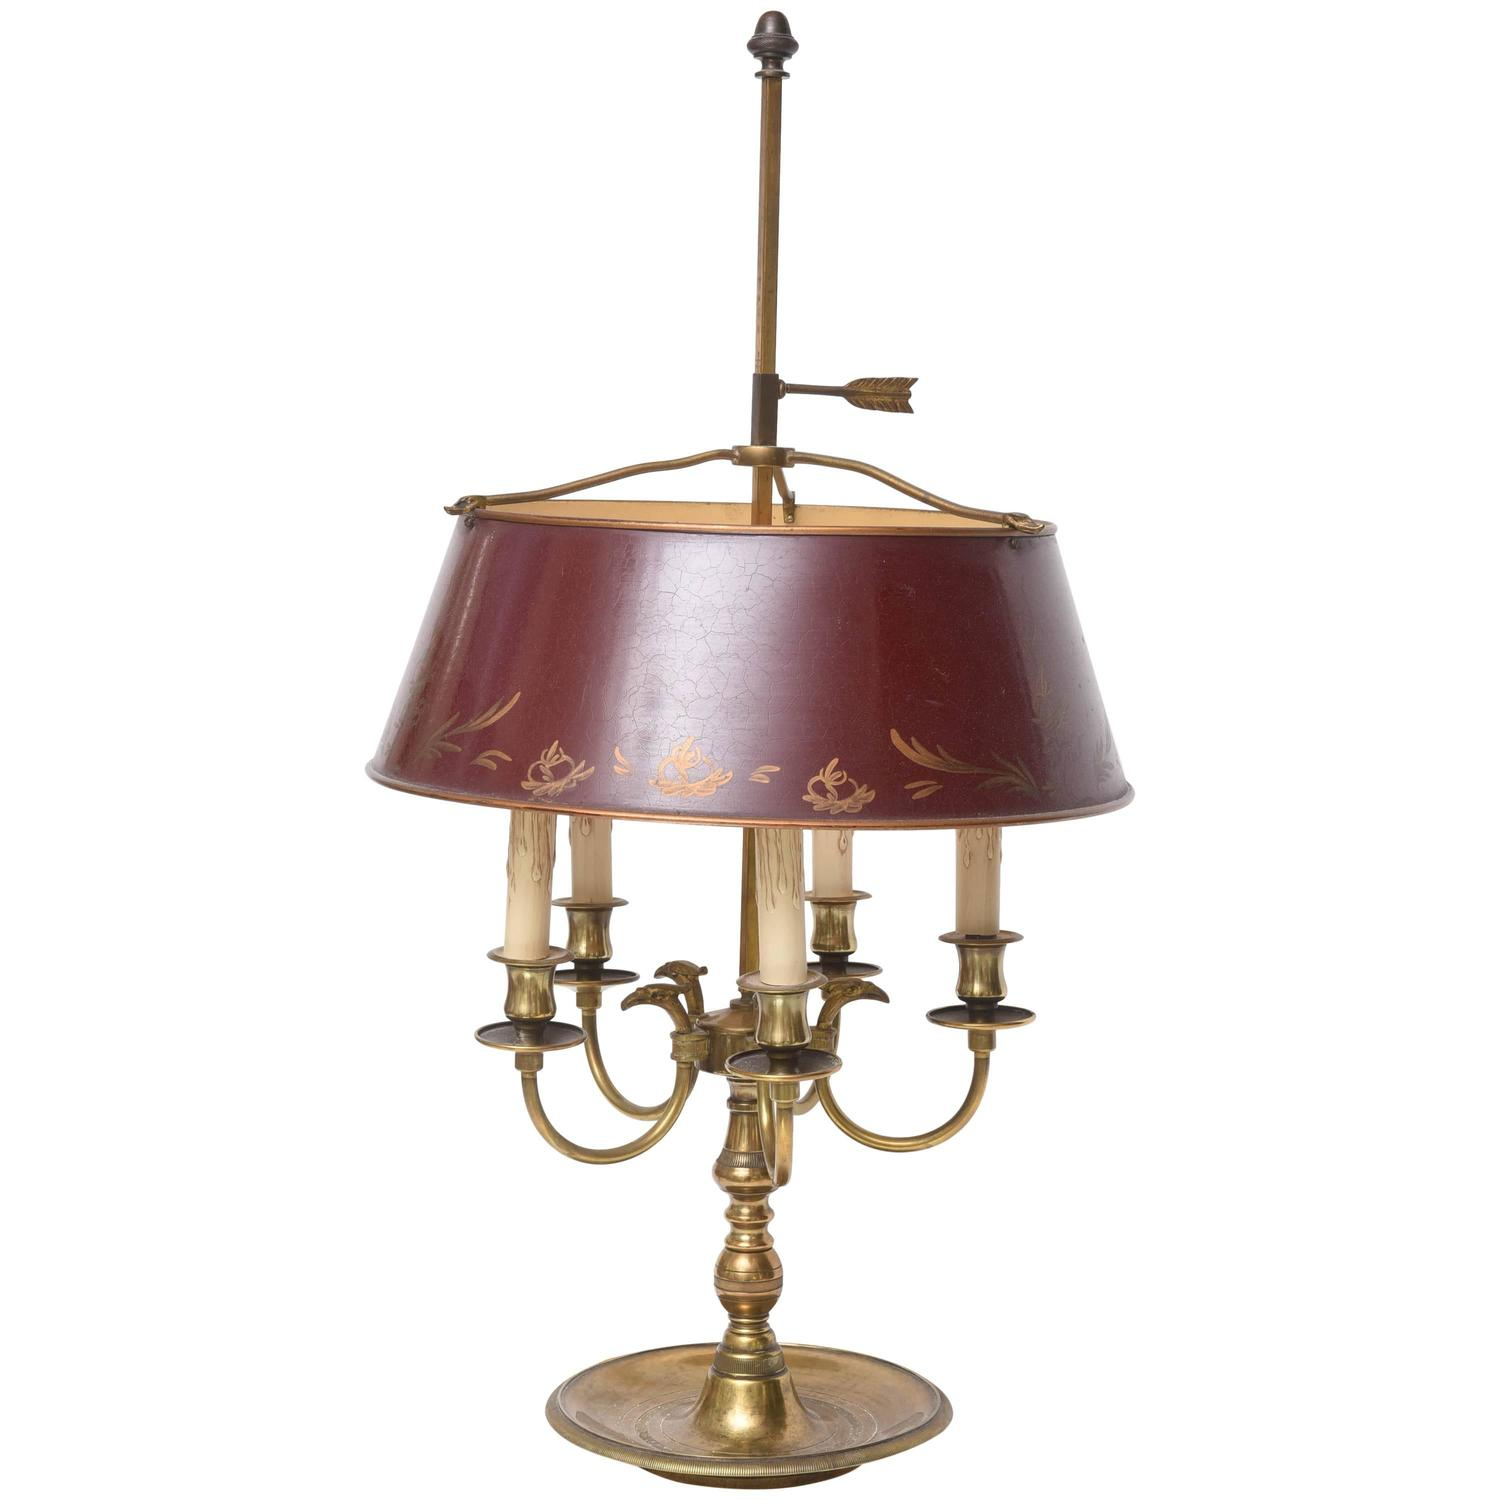 Antique Tole Bouillotte Lamp at 1stdibs